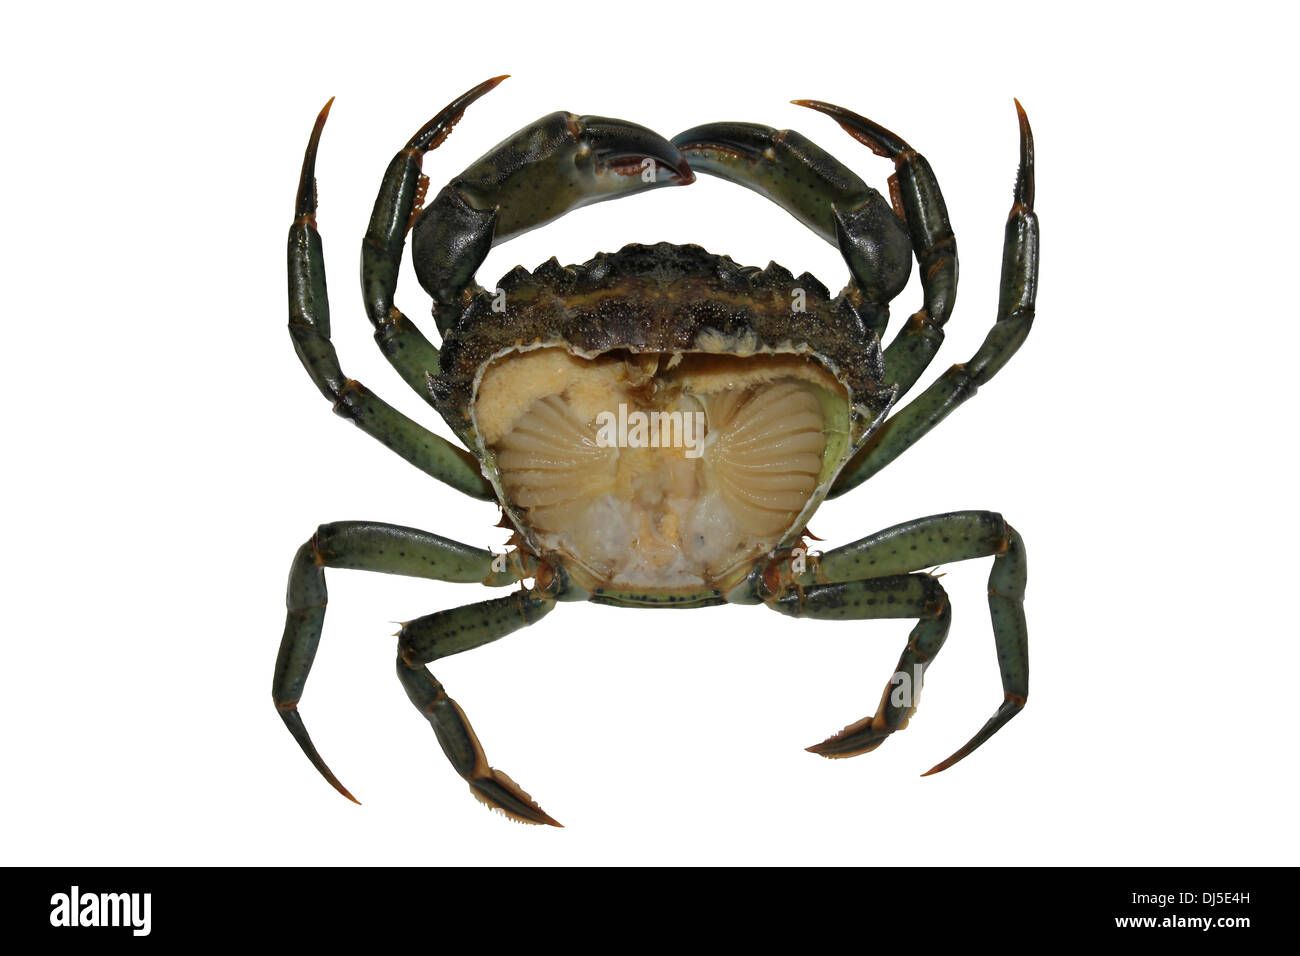 Common Edible Crab Stock Photos & Common Edible Crab Stock Images ...